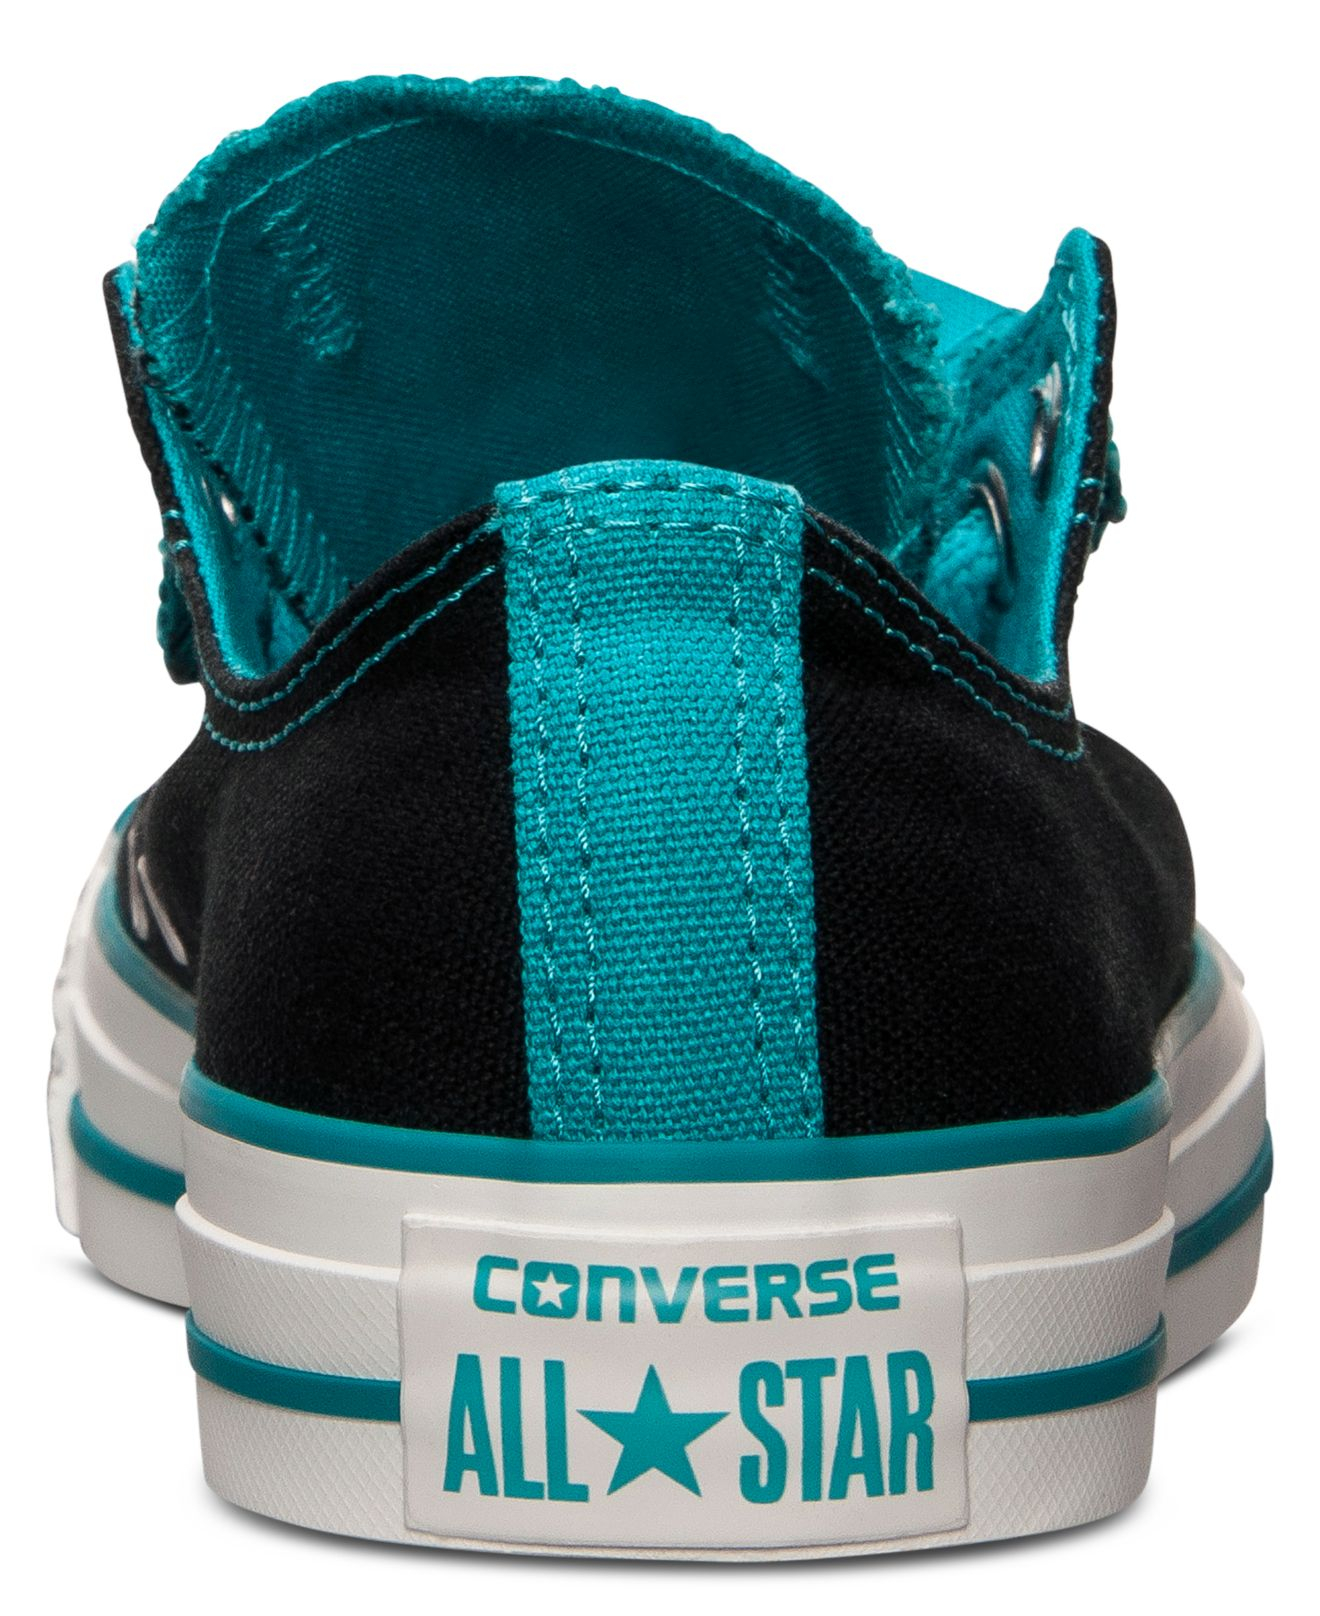 Lyst - Converse Women S Chuck Taylor All Star Double Tongue Casual Sneakers  From Finish Line in Black 85d0dd199